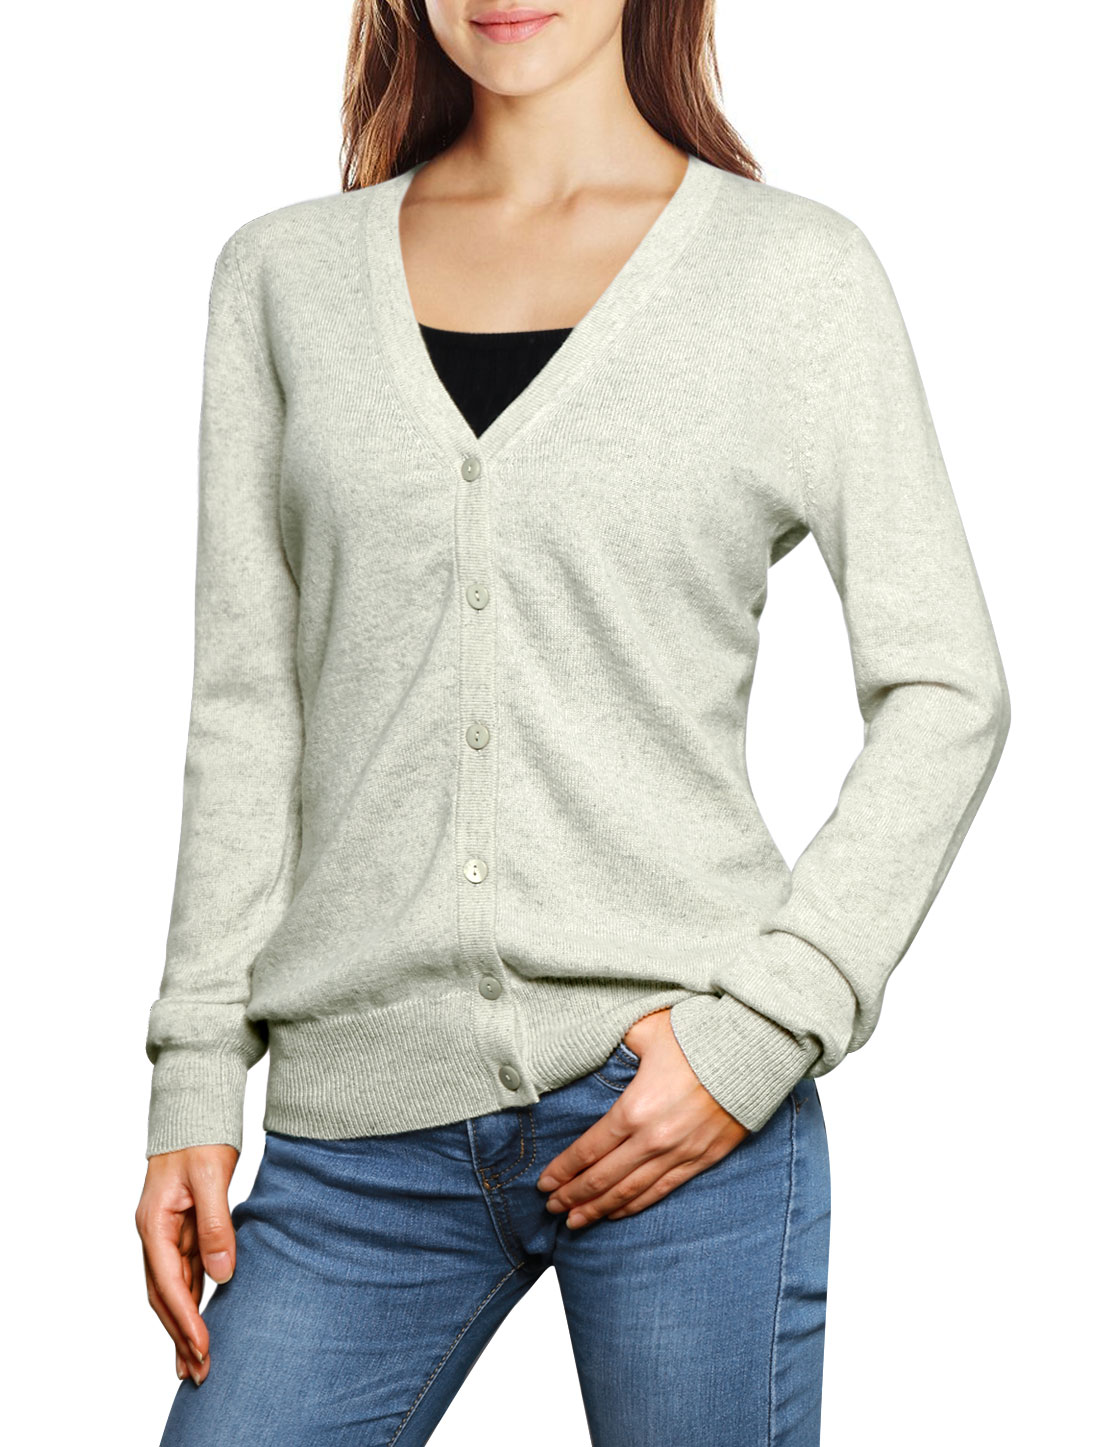 Ladies Classic Buttoned V-Neck Cashmere Cardigan Gray v